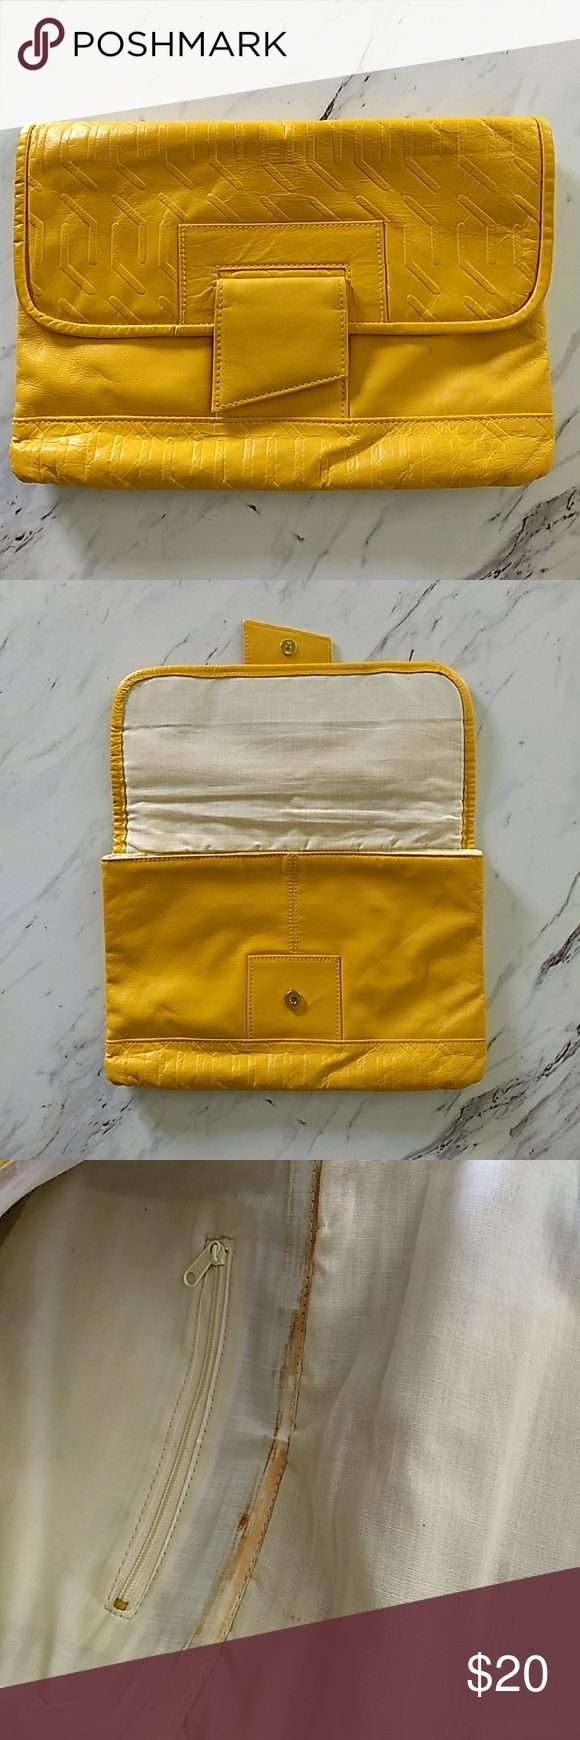 """Vintage Mustard Yellow Leather Clutch Purse SO CUTE. Unsure of brand. So soft! It does say """"genuine leather"""" on the tag (see photo.) Size is 8""""x12"""" this is the perfect accent to your fall wardrobe! Tiny pen mark, cannot see very well at all! Have not tried to remove. See photos for interior condition. There are stains, but that's true of most vintage purses I've seen!  Does not affect exterior at all. Bags Clutches & Wristlets"""